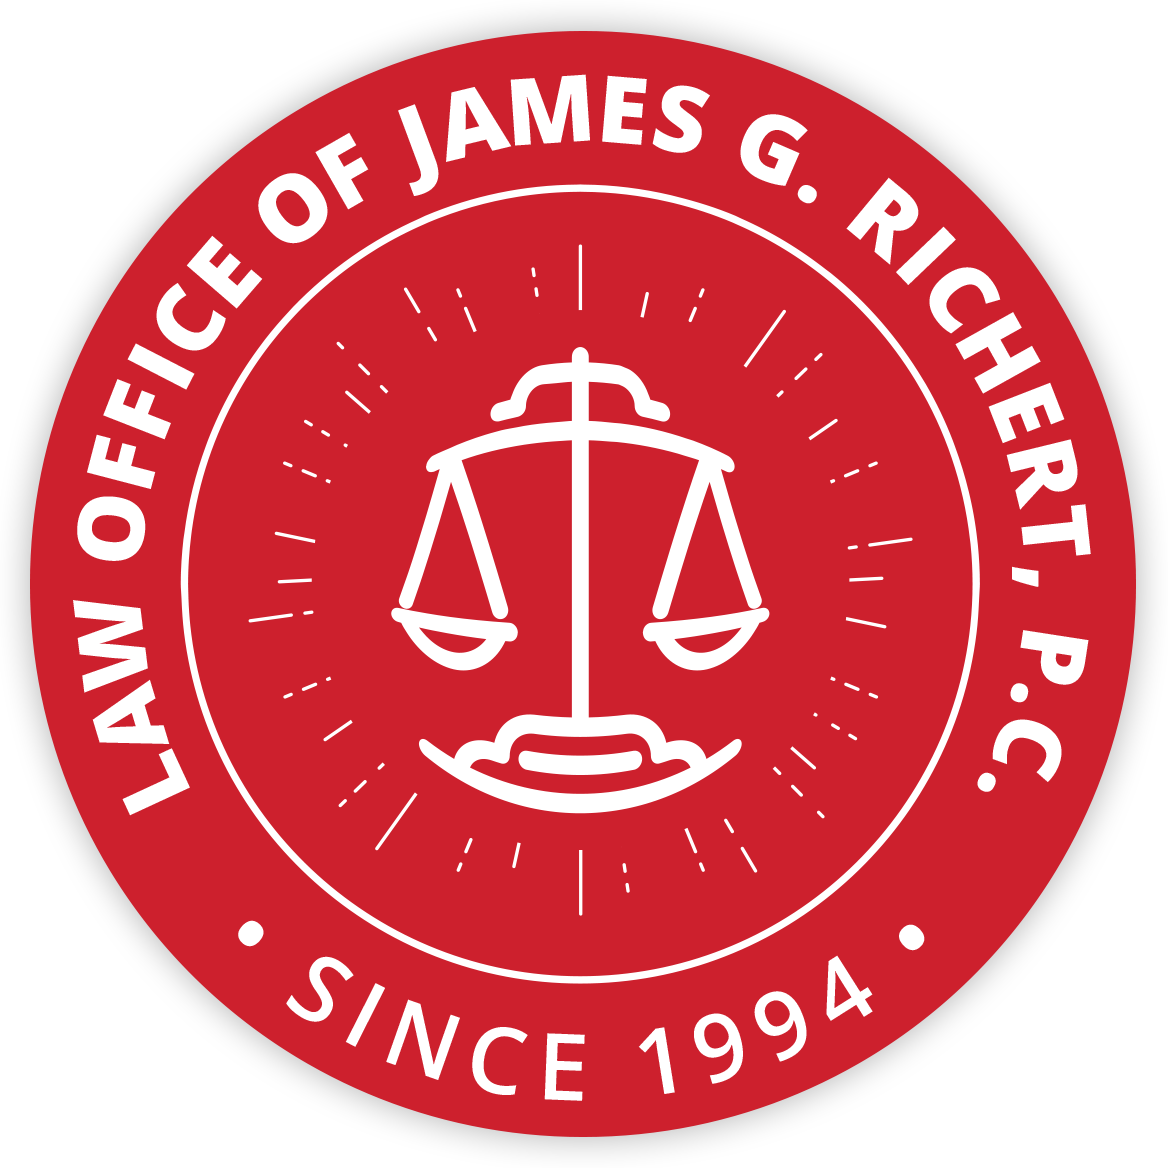 Law Office of James G. Richert, P.C.